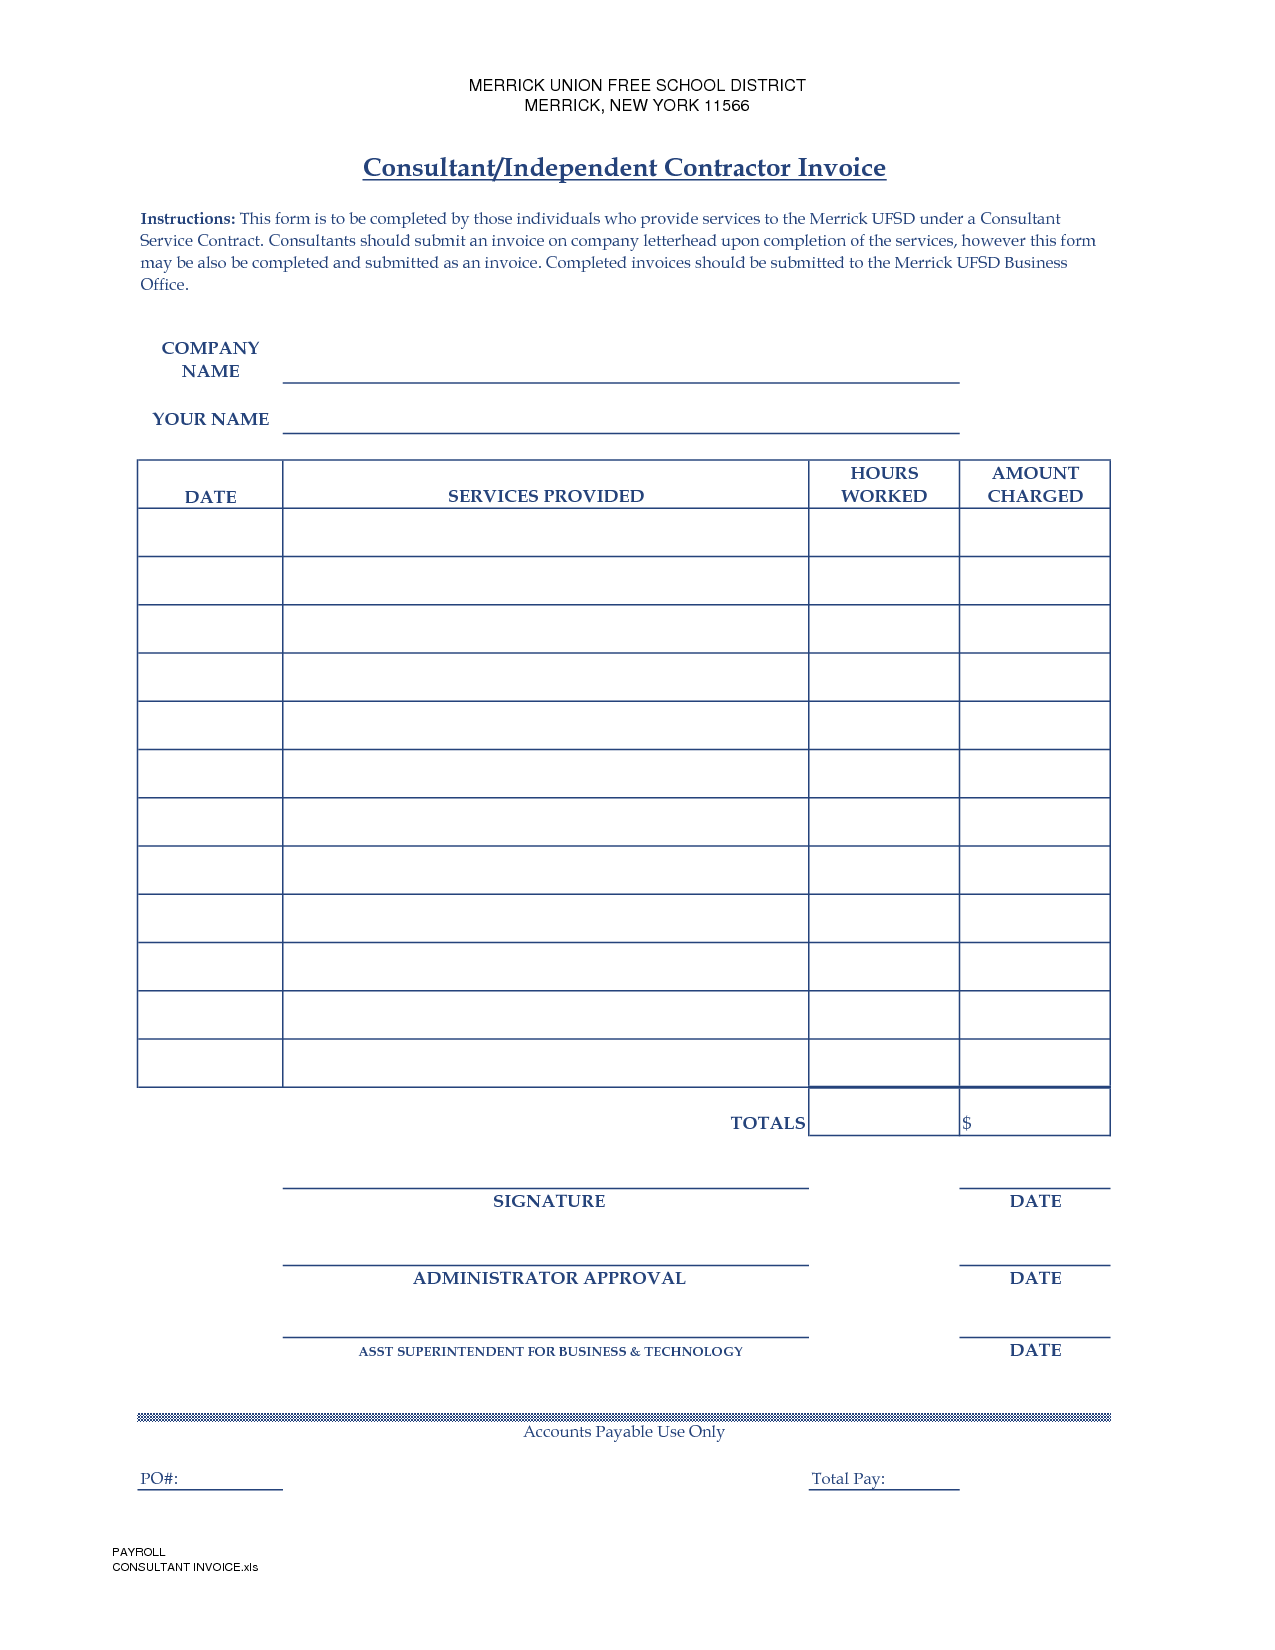 Consulting Invoice Template Free Hardhostinfo - Fillable invoice template free for service business